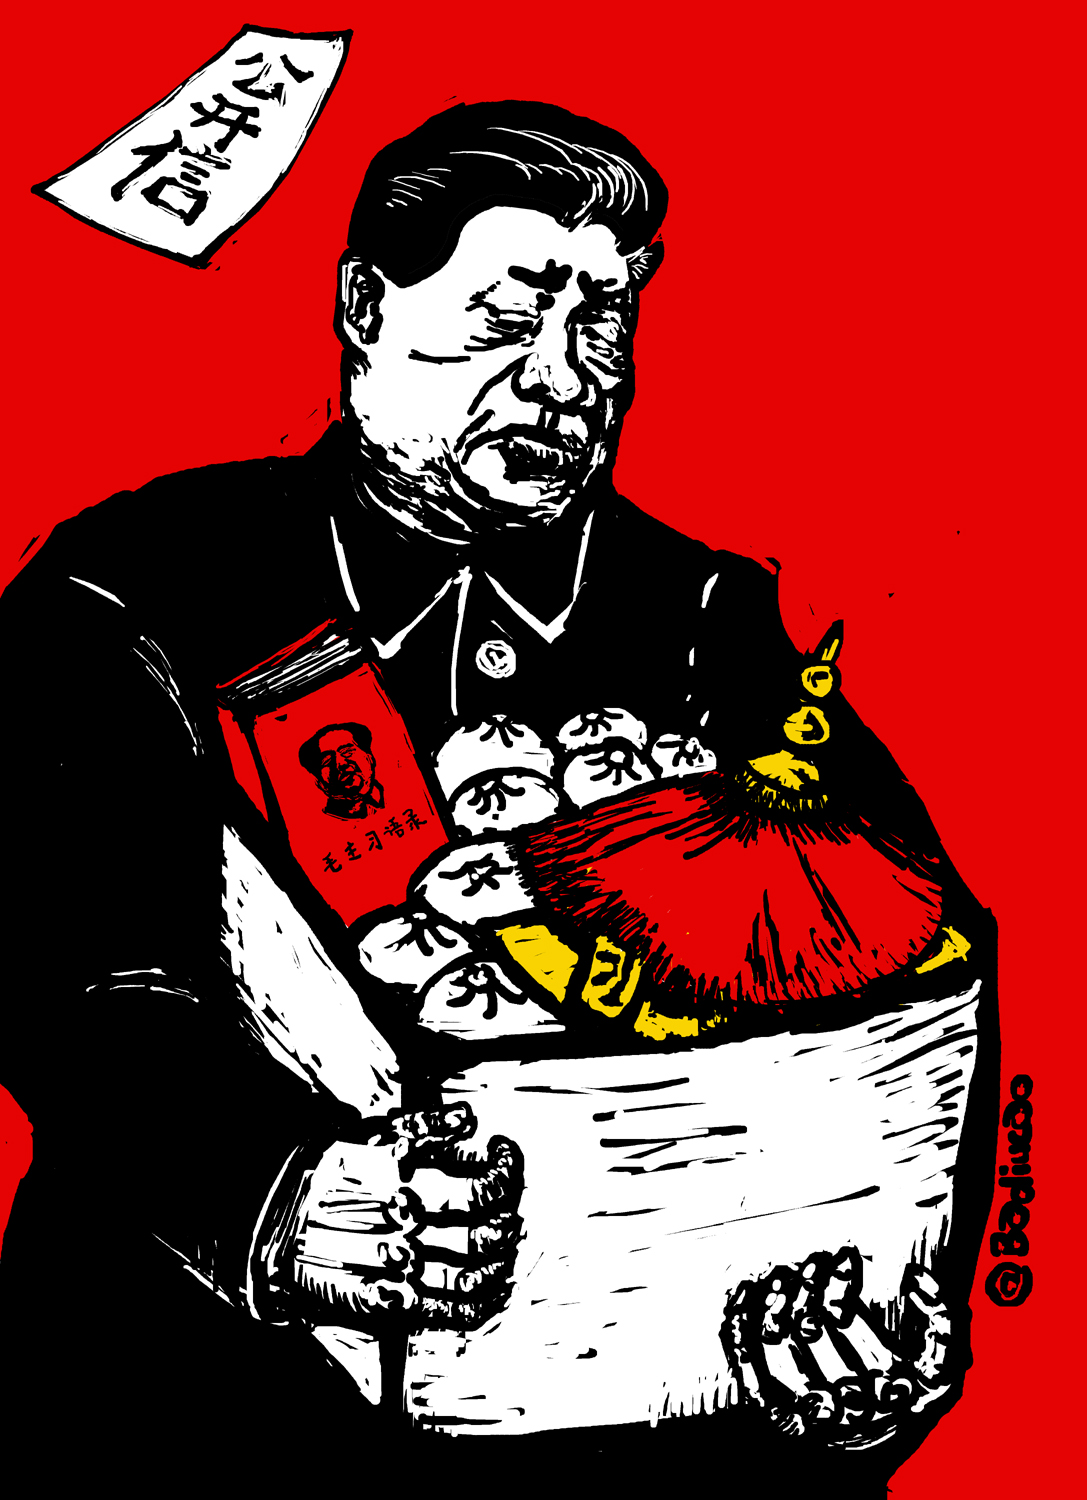 Badiucao (巴丢草): Xi Jinping, You're Fired!